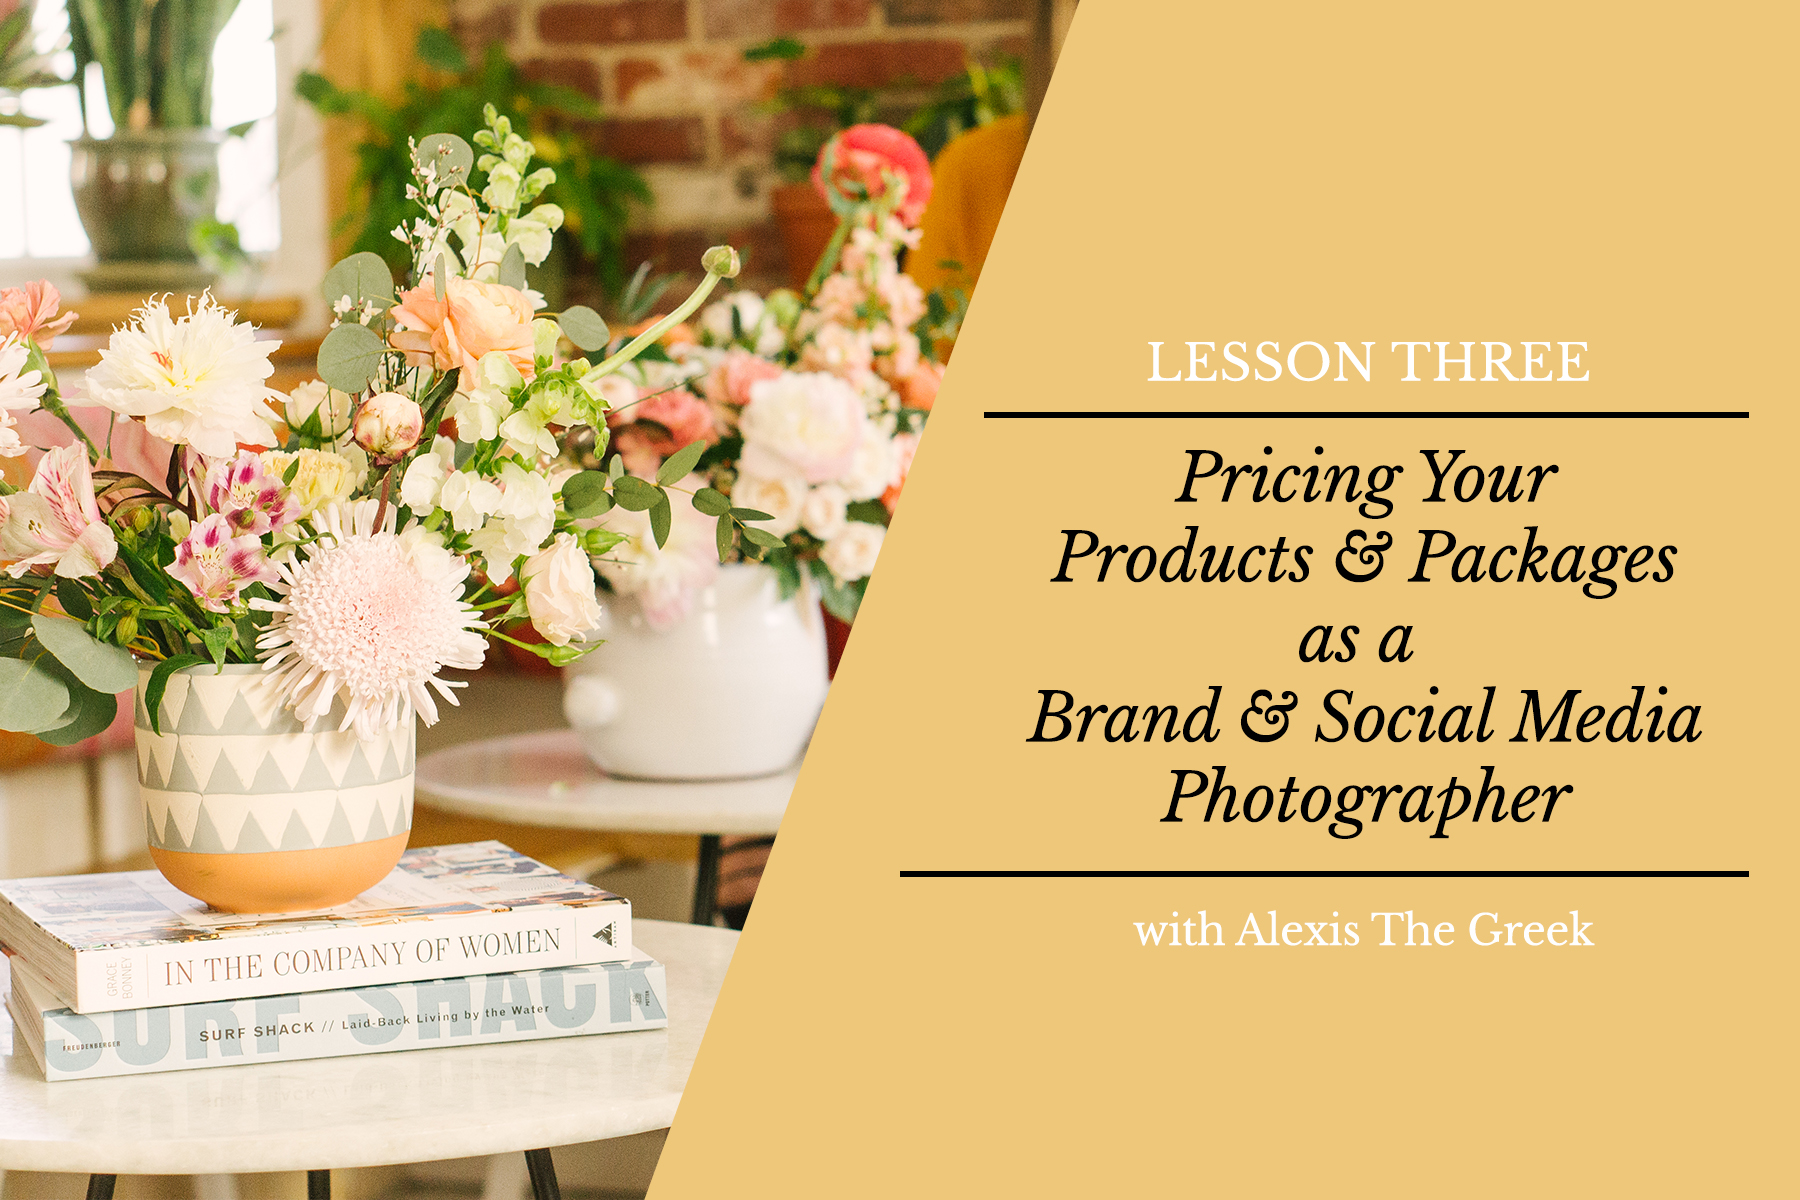 Social Media Photography & Photo Styling Business Course   Alexis The Greek